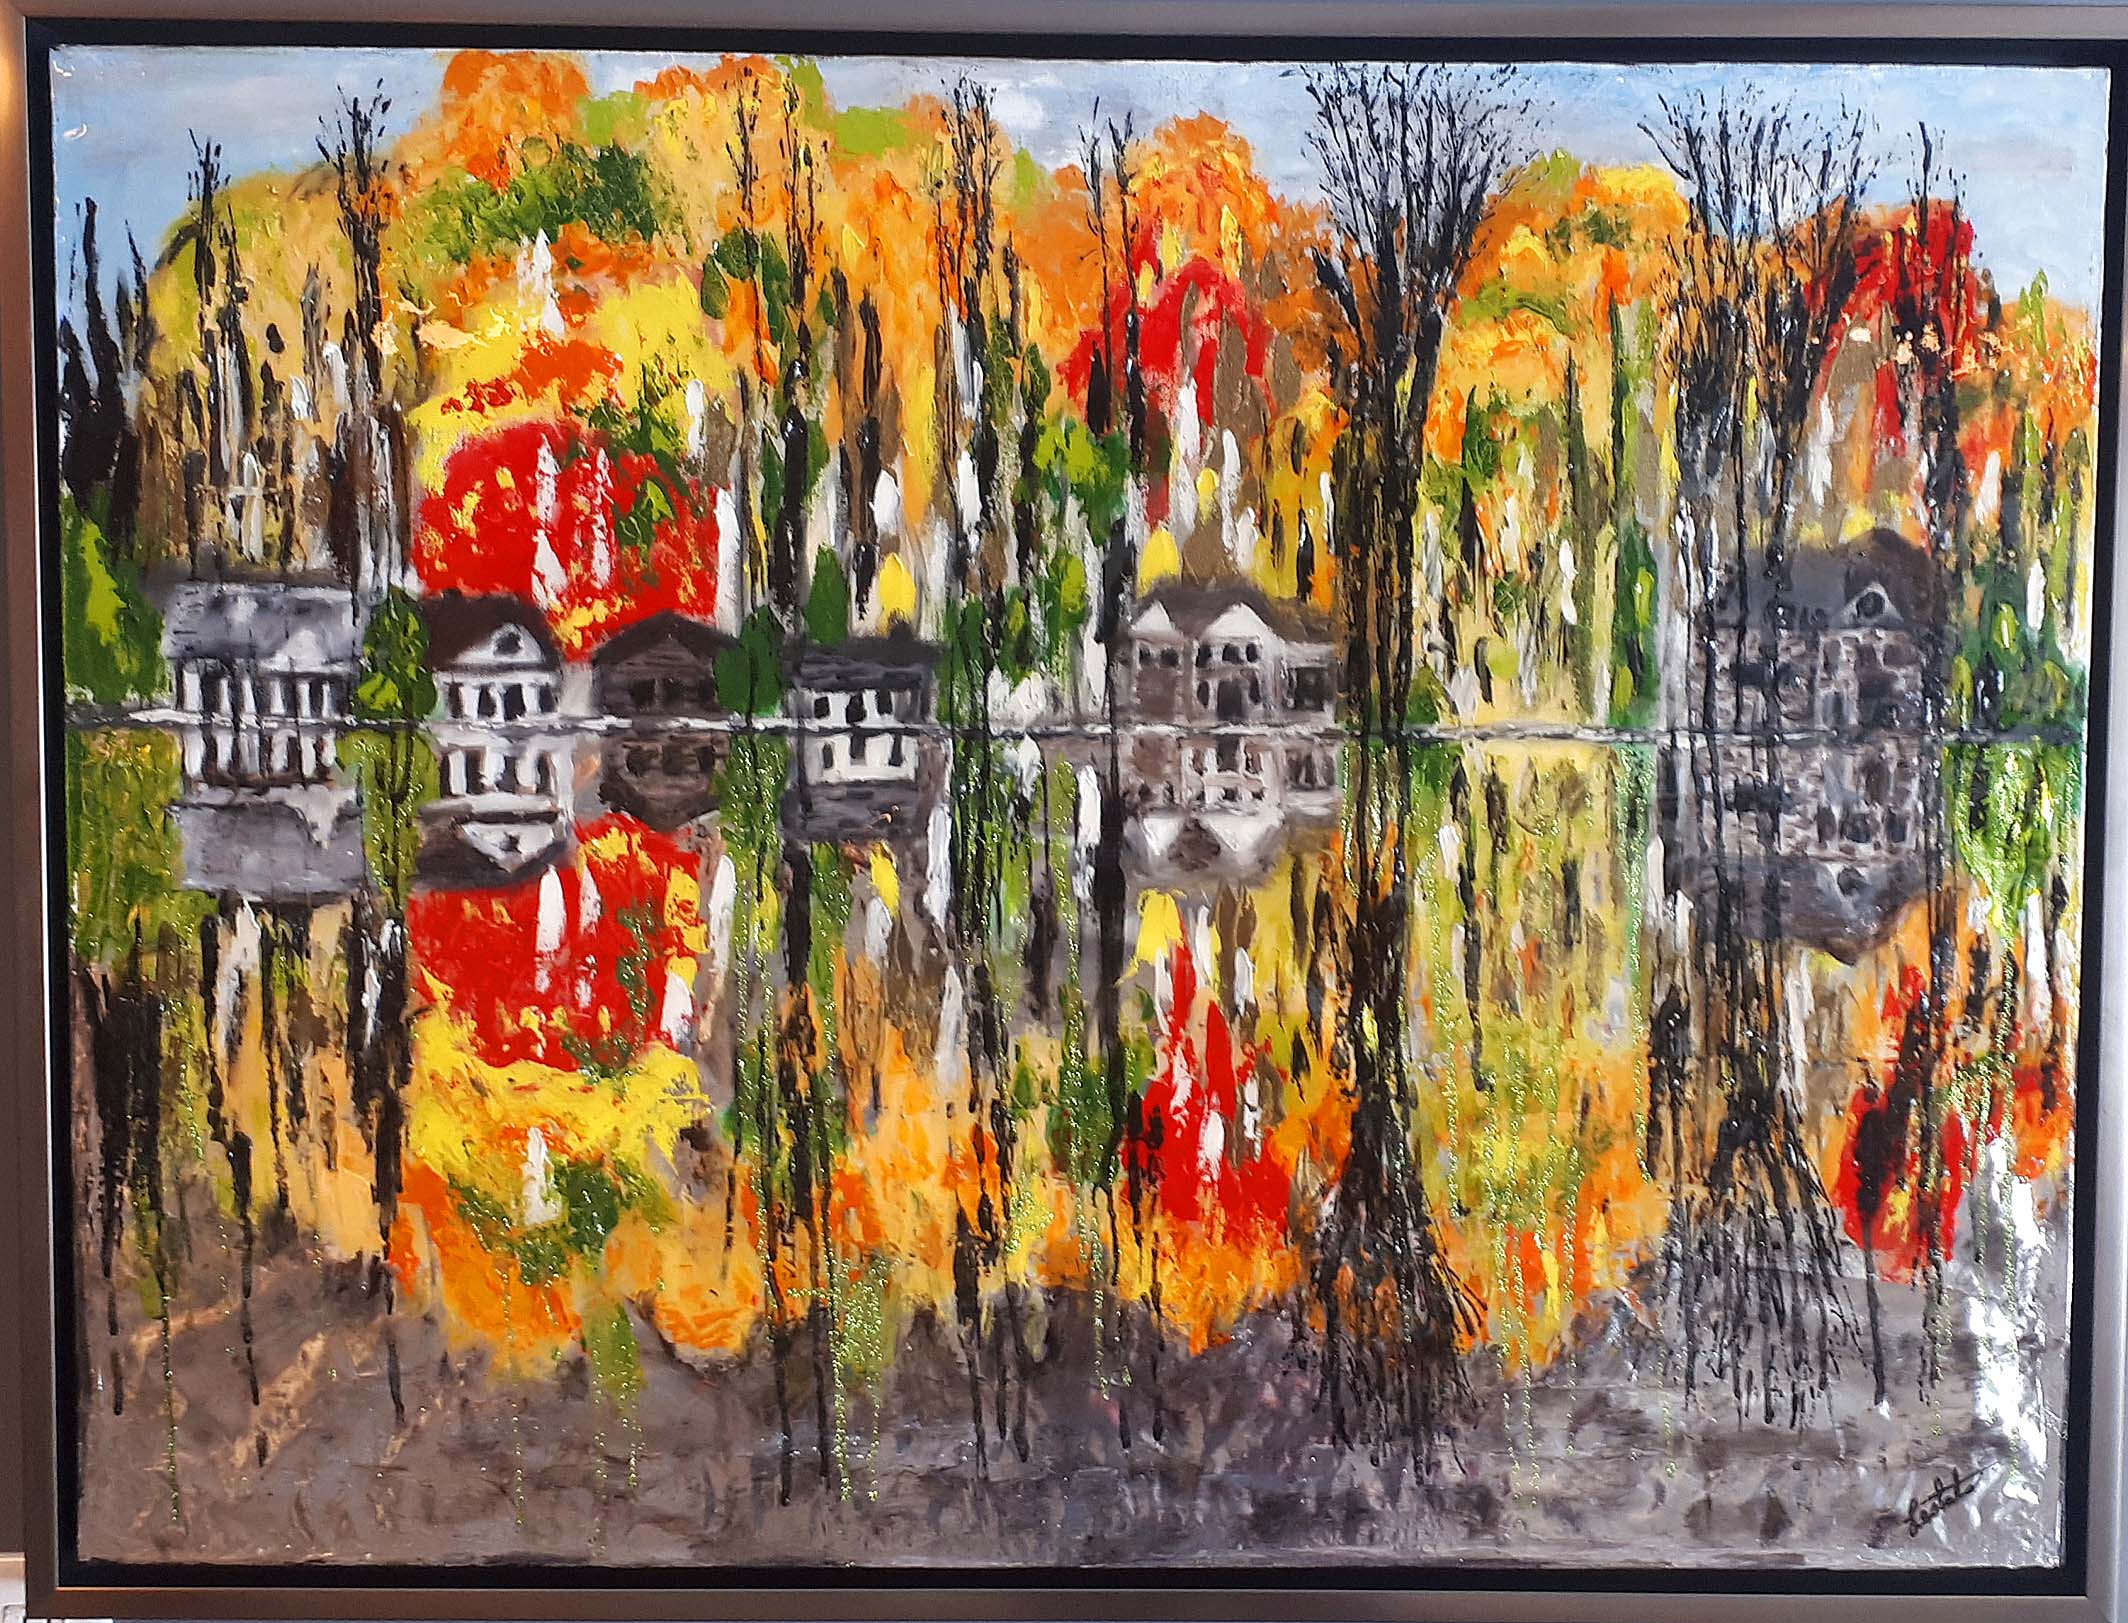 Nathalie Lesbats, Quebec, Acrylic on foil, Size: 42 x 32, Price: 650.00